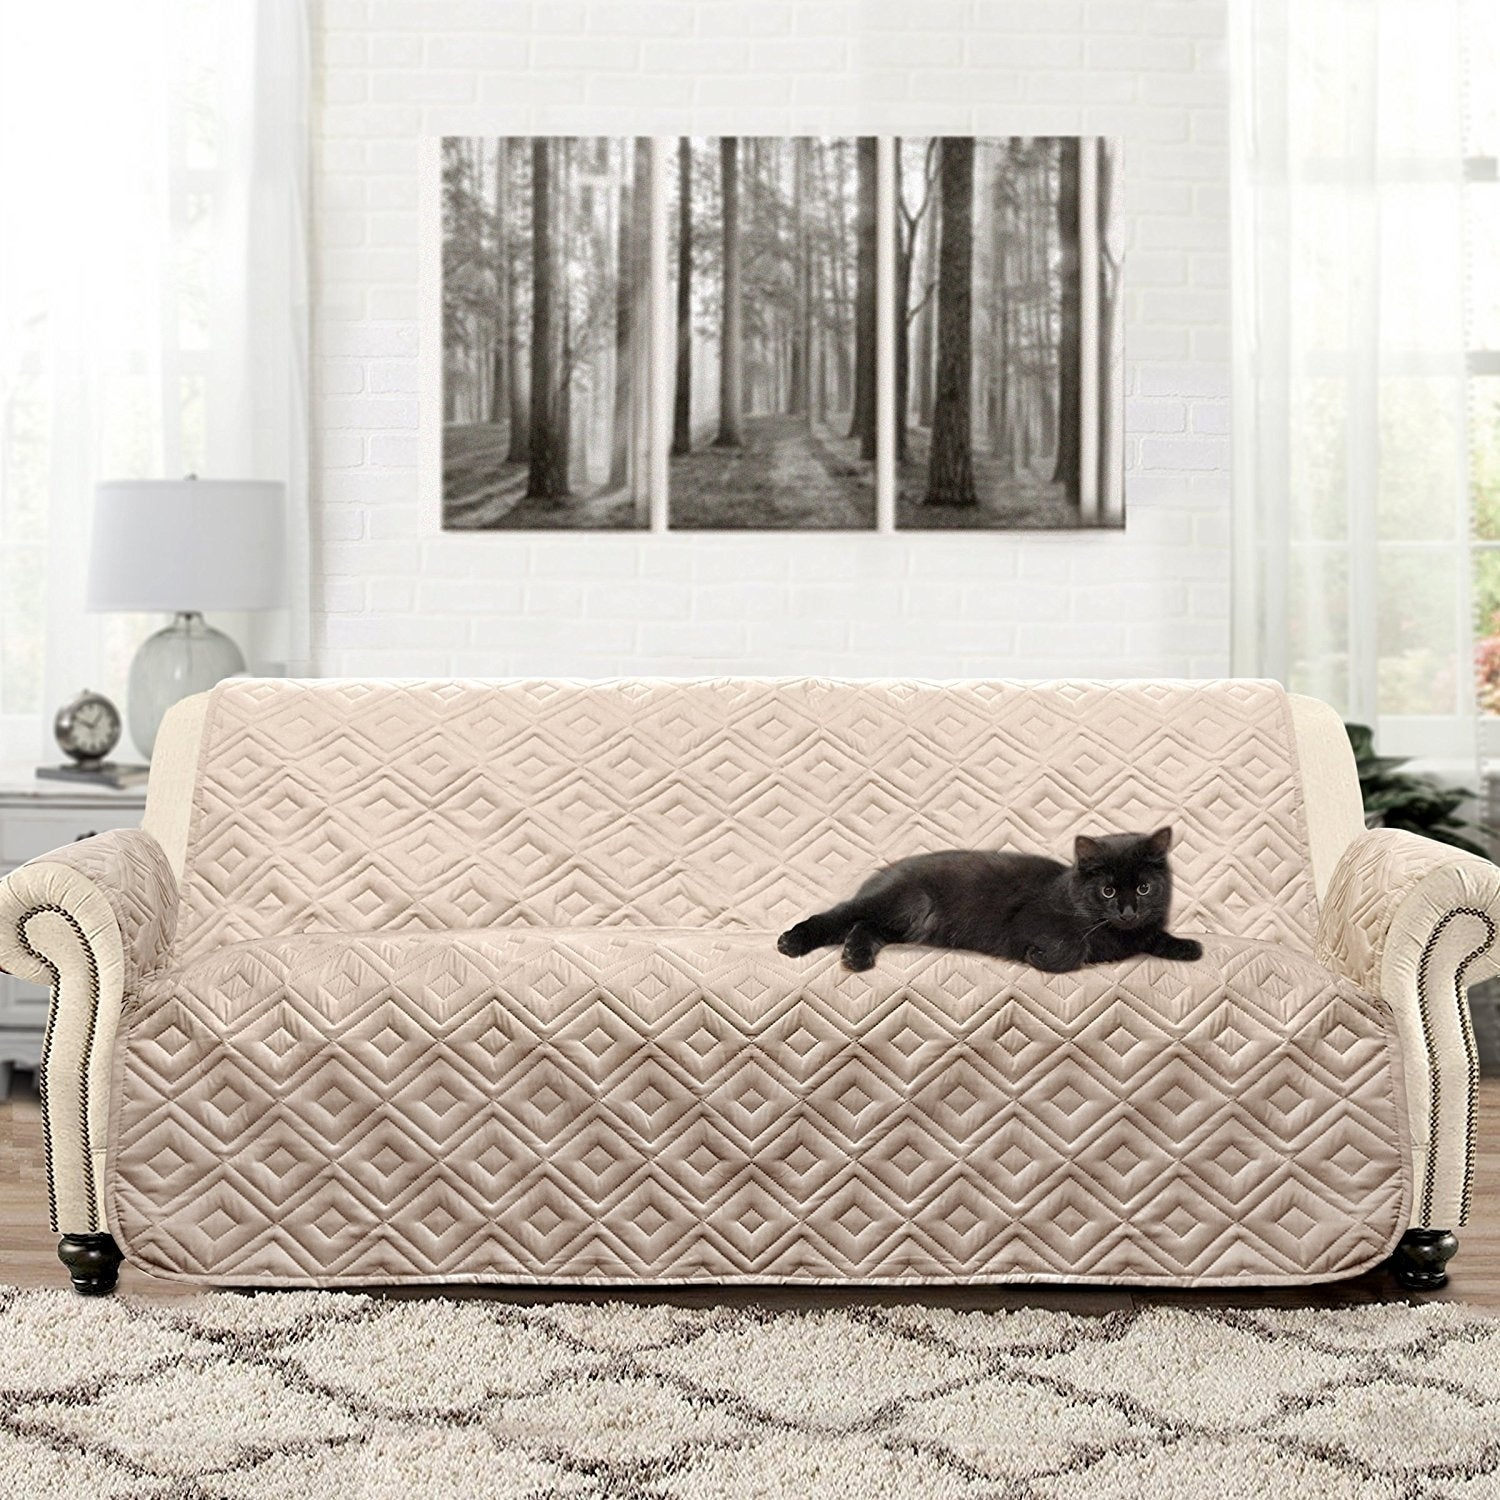 Driftaway Marley 100 Waterproof Quilted Machine Washable Sofa Furniture Protector On Free Shipping Today 22575582